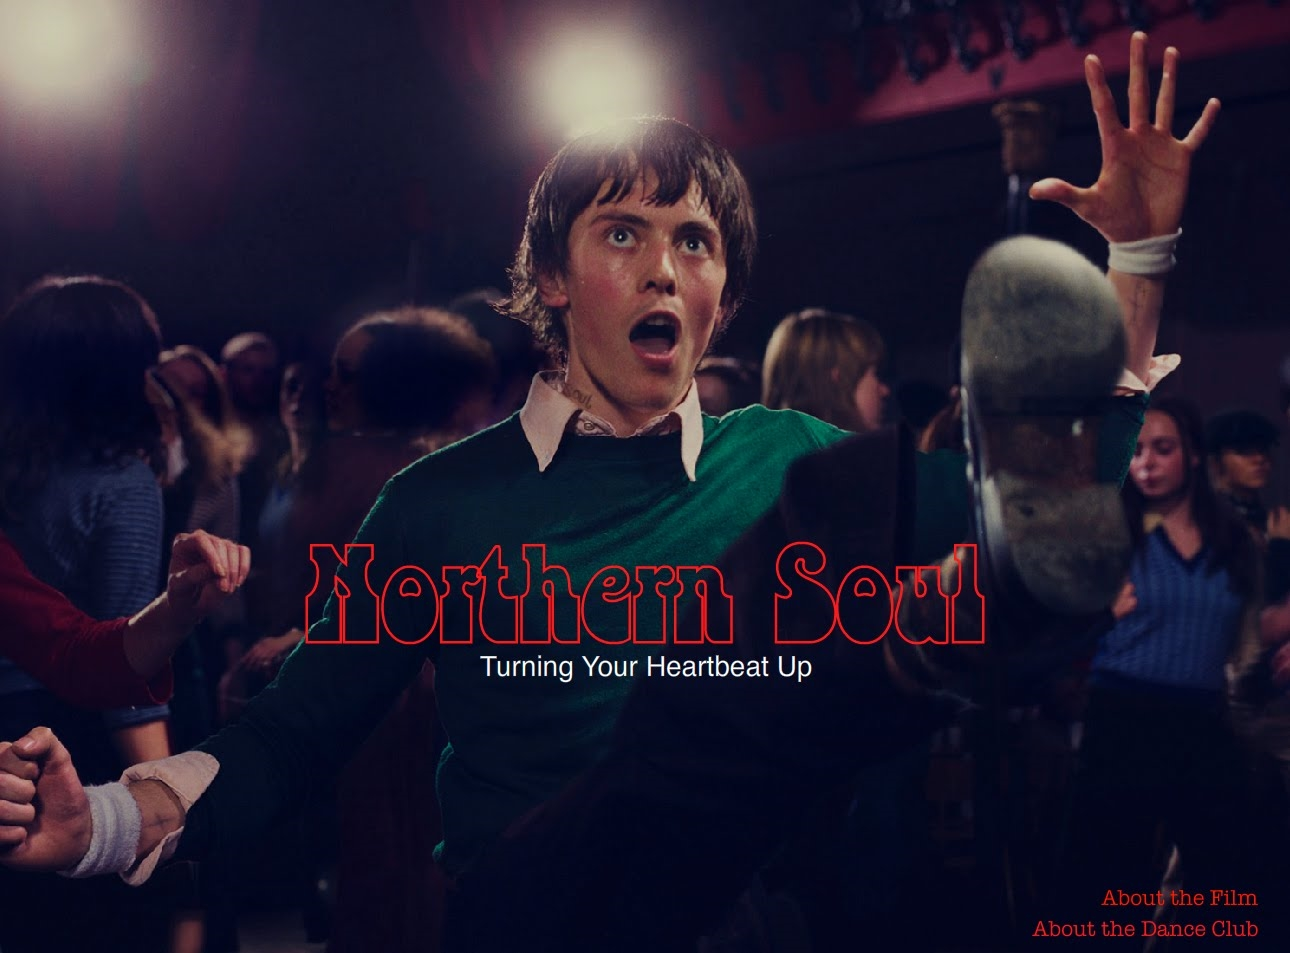 Northern Soul – the Film